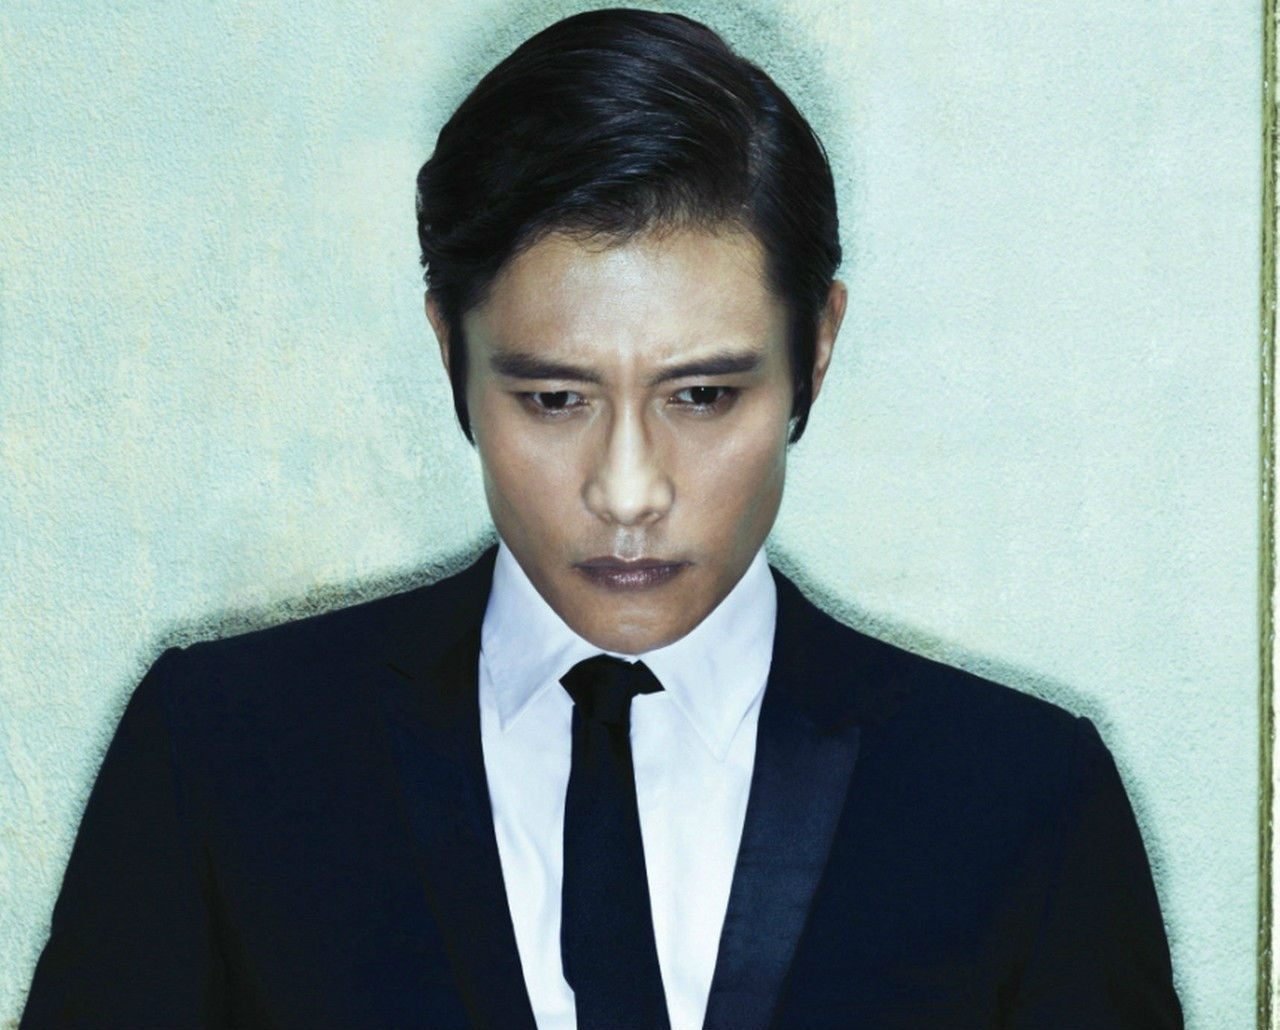 'G.I. Joe' Star Byung Hun-lee Makes Me Want to Import More of These from Korea